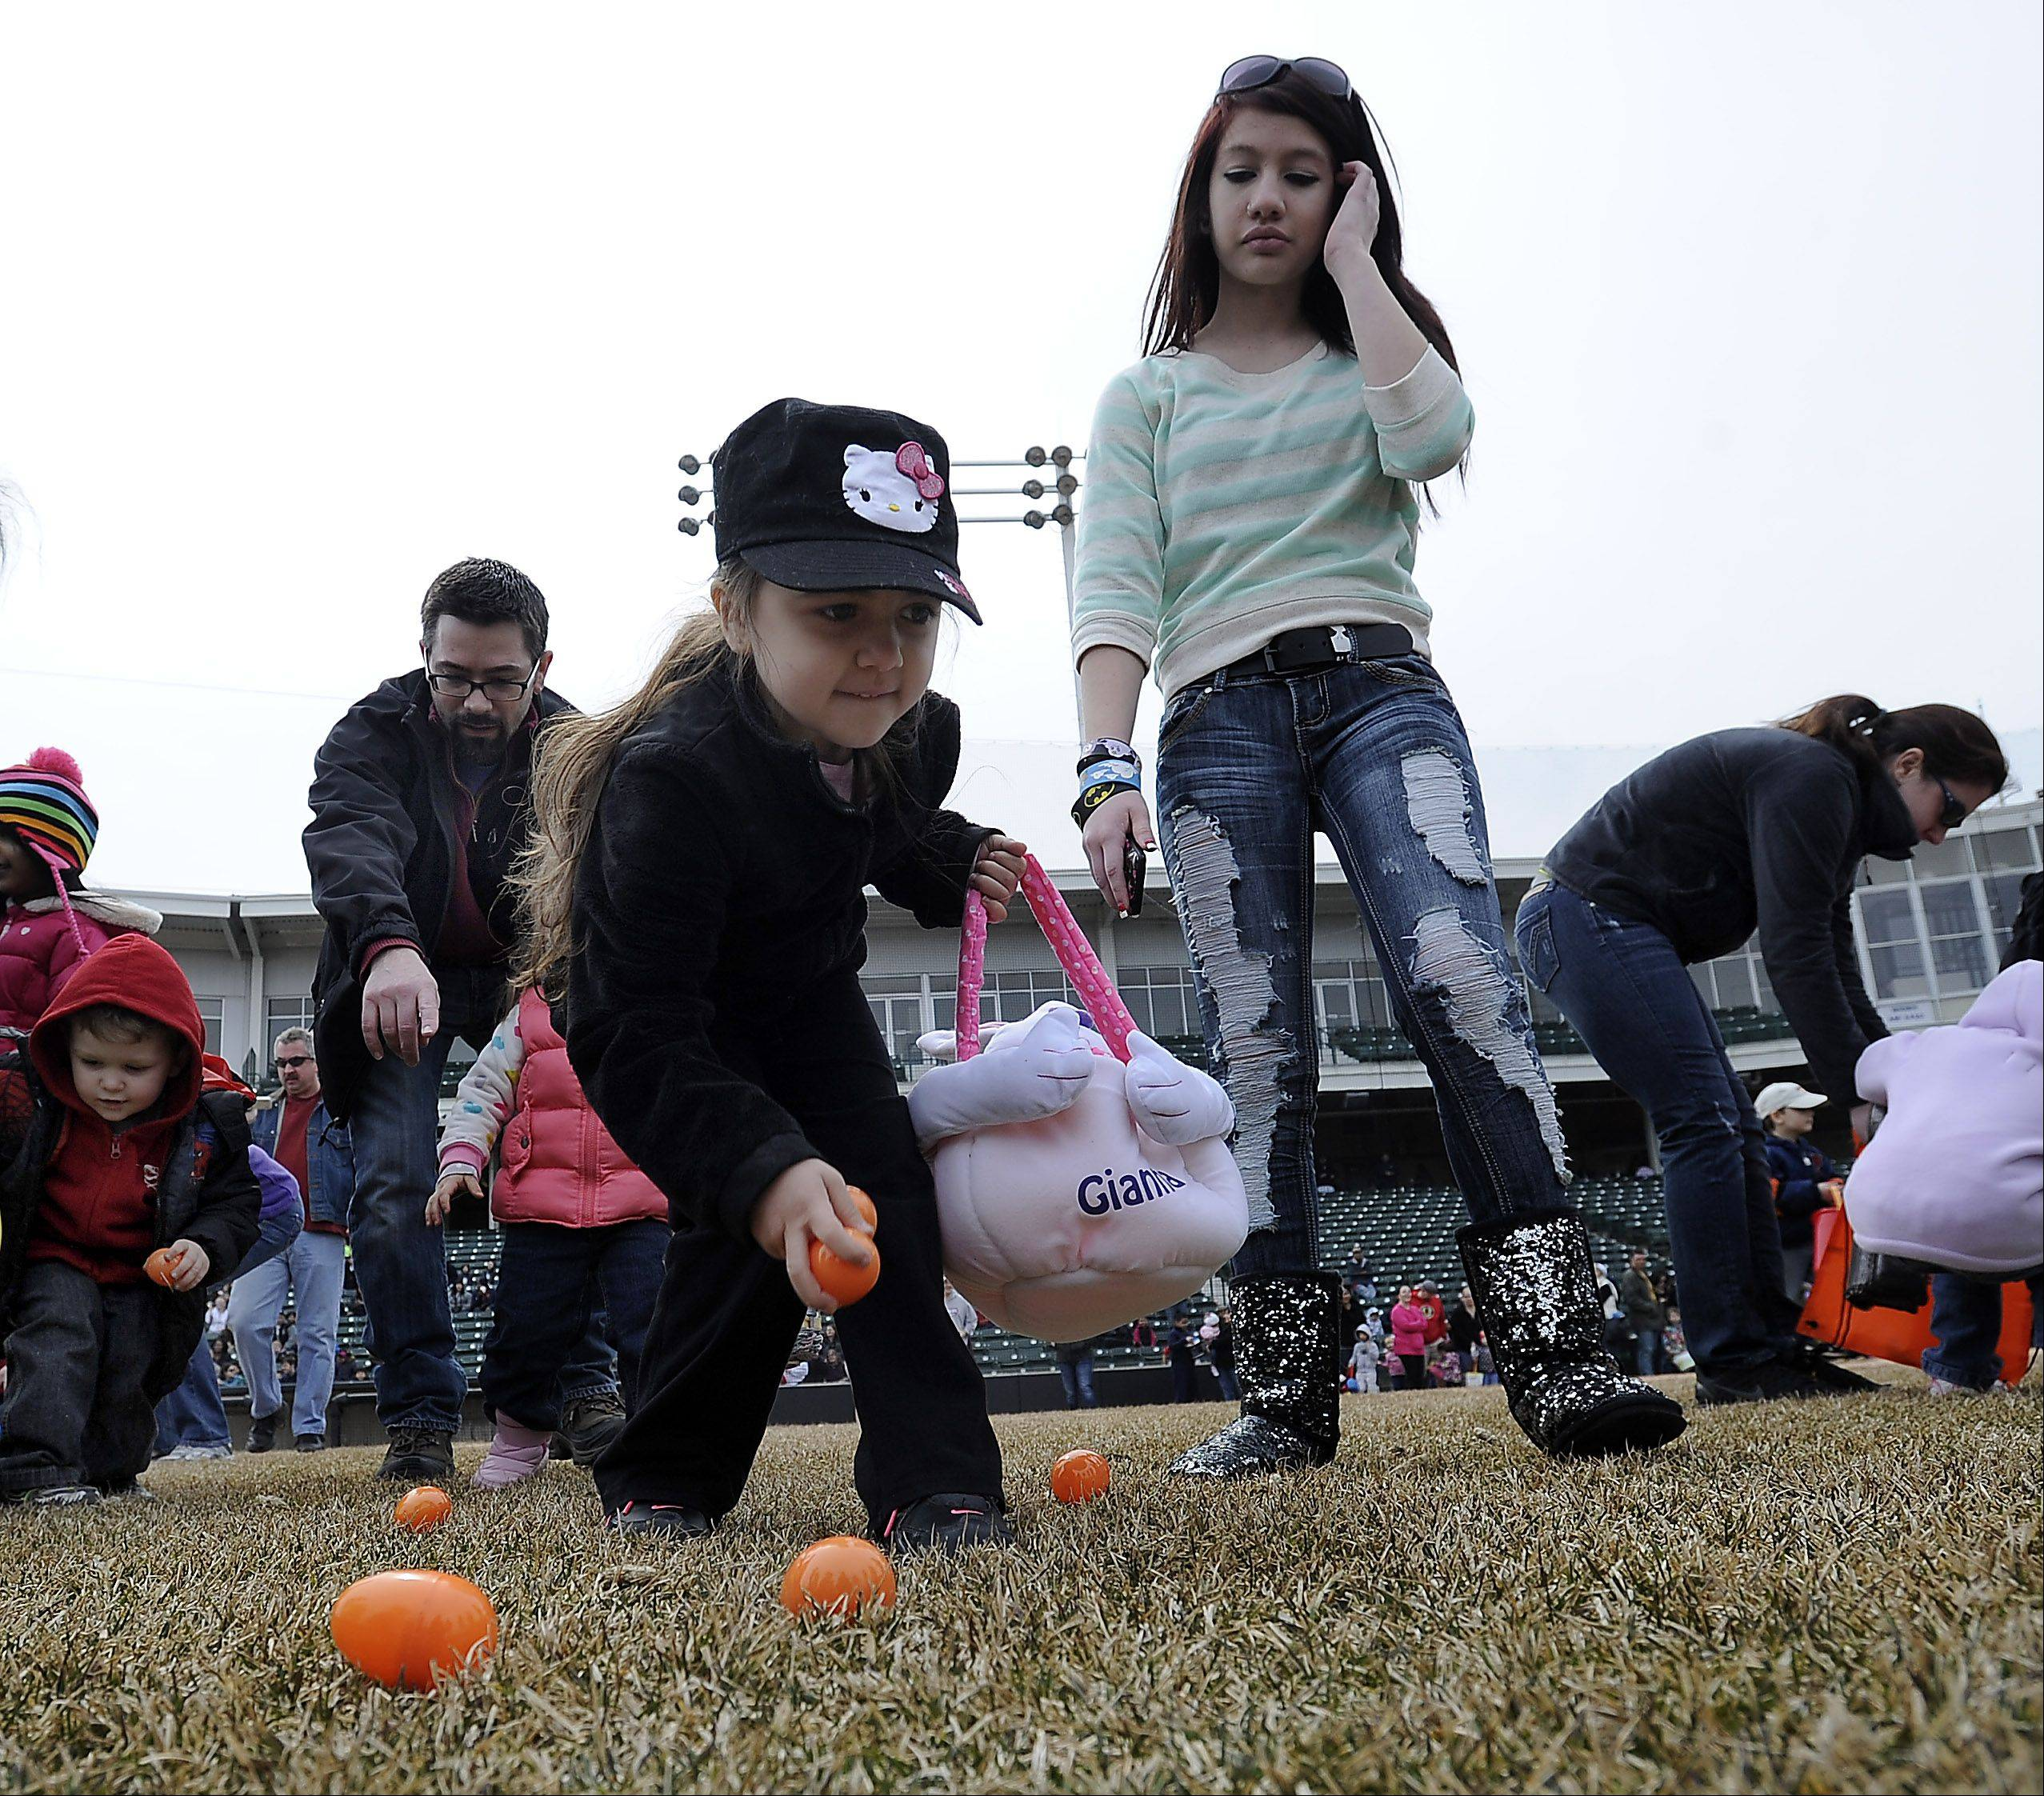 Gianna Balsamo,4, of Schaumburg and her helper Kaitin Agron,15, scoop up as many Easter eggs as possible in the mad rush at the Schaumburg Boomers 2nd annual Easter egg hunt on Saturday.